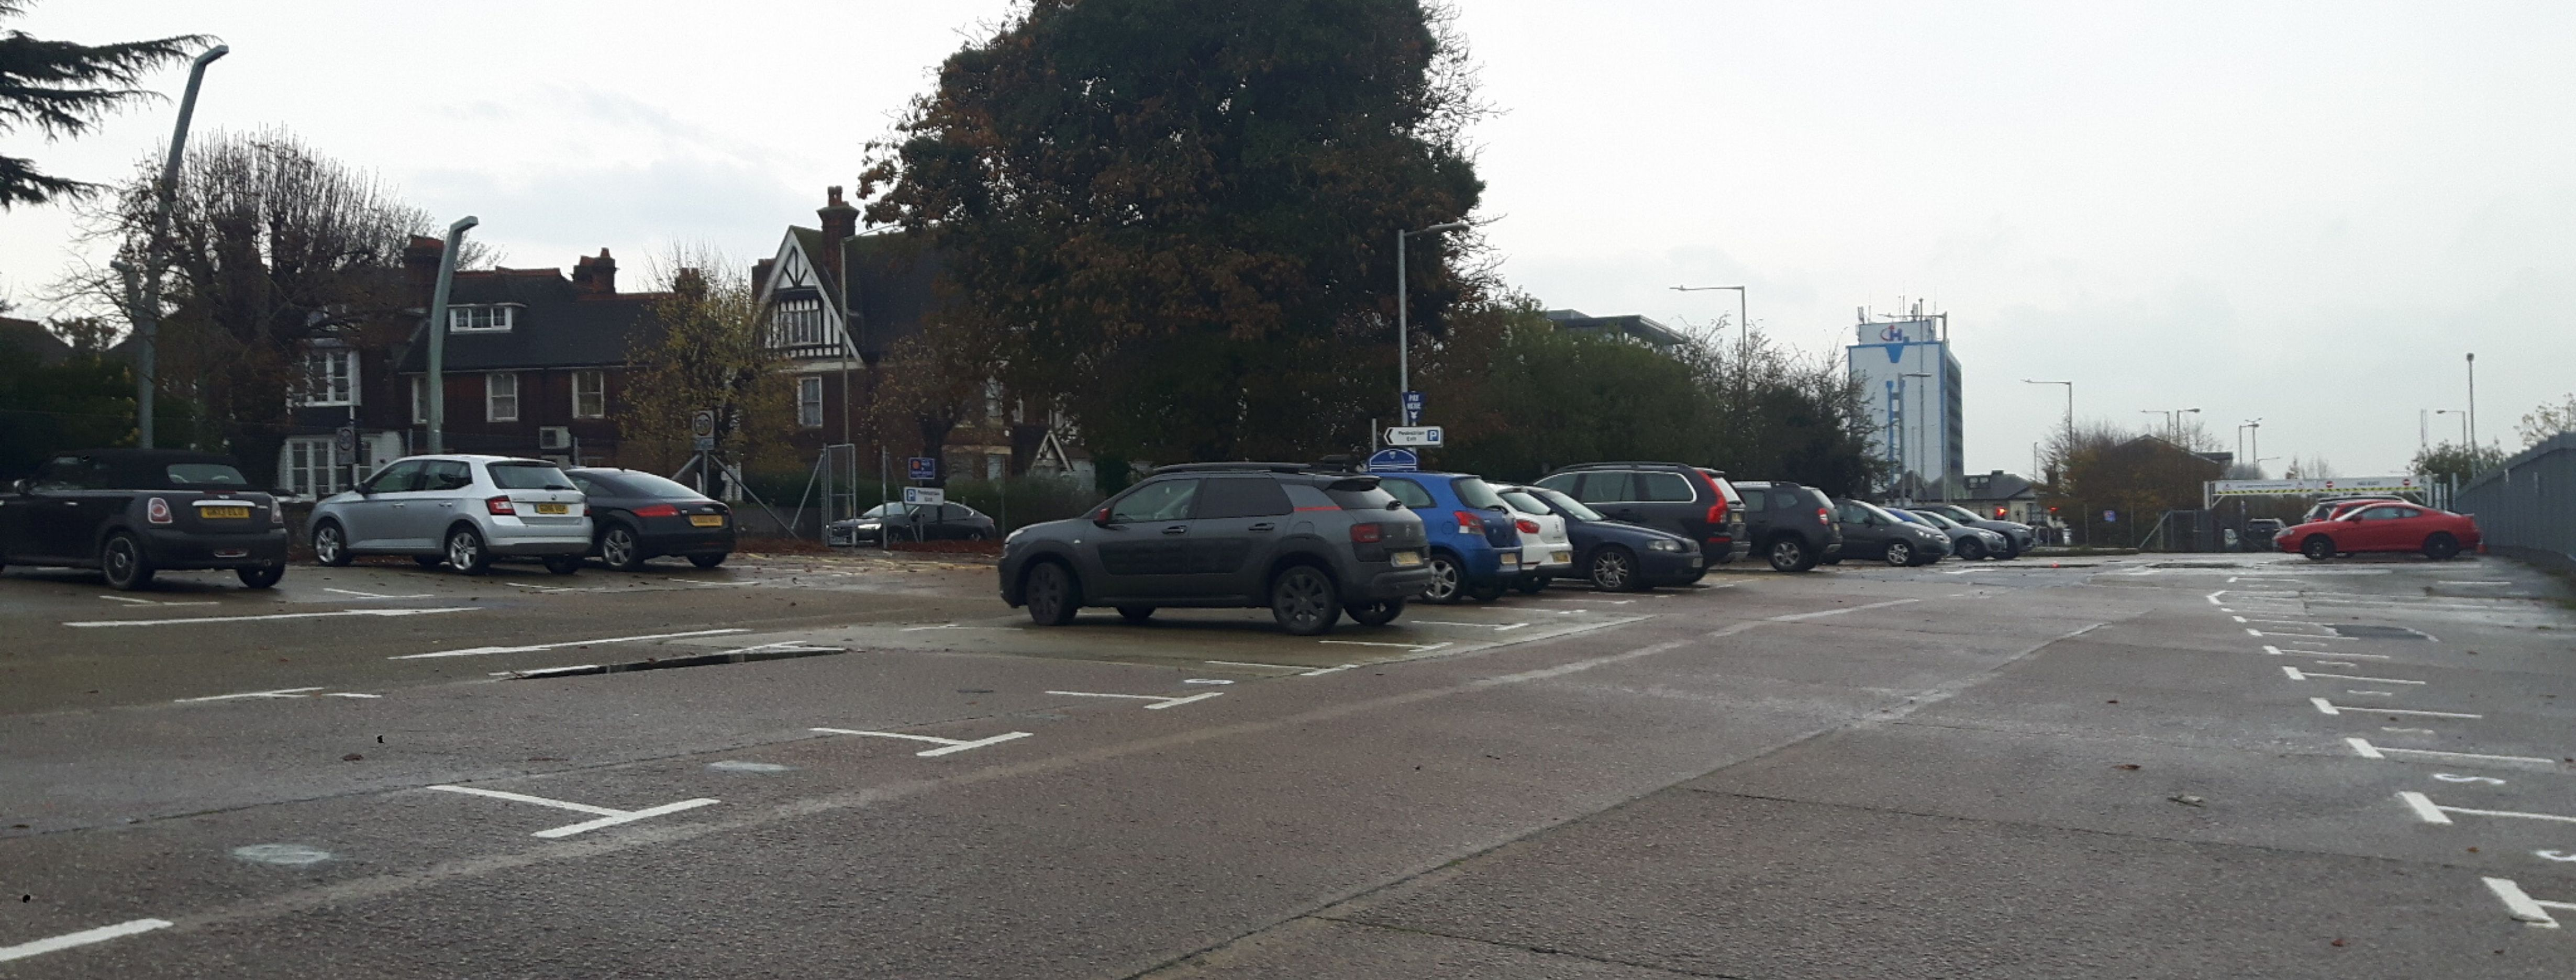 image for news article entitled Elwick Road car park update